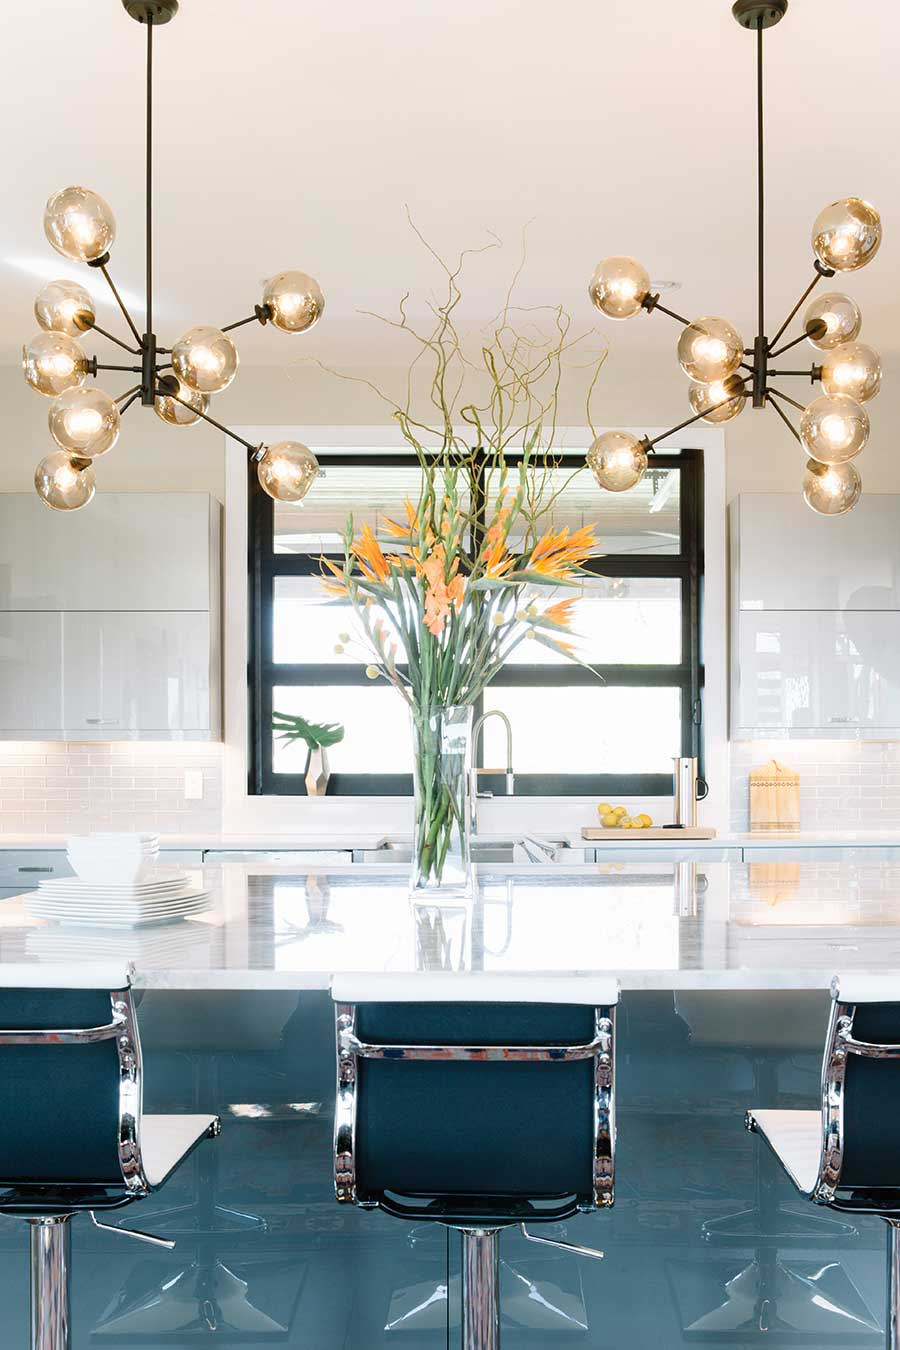 Jessica Davis' dining room with funky light fixtures, barstools, and flowers